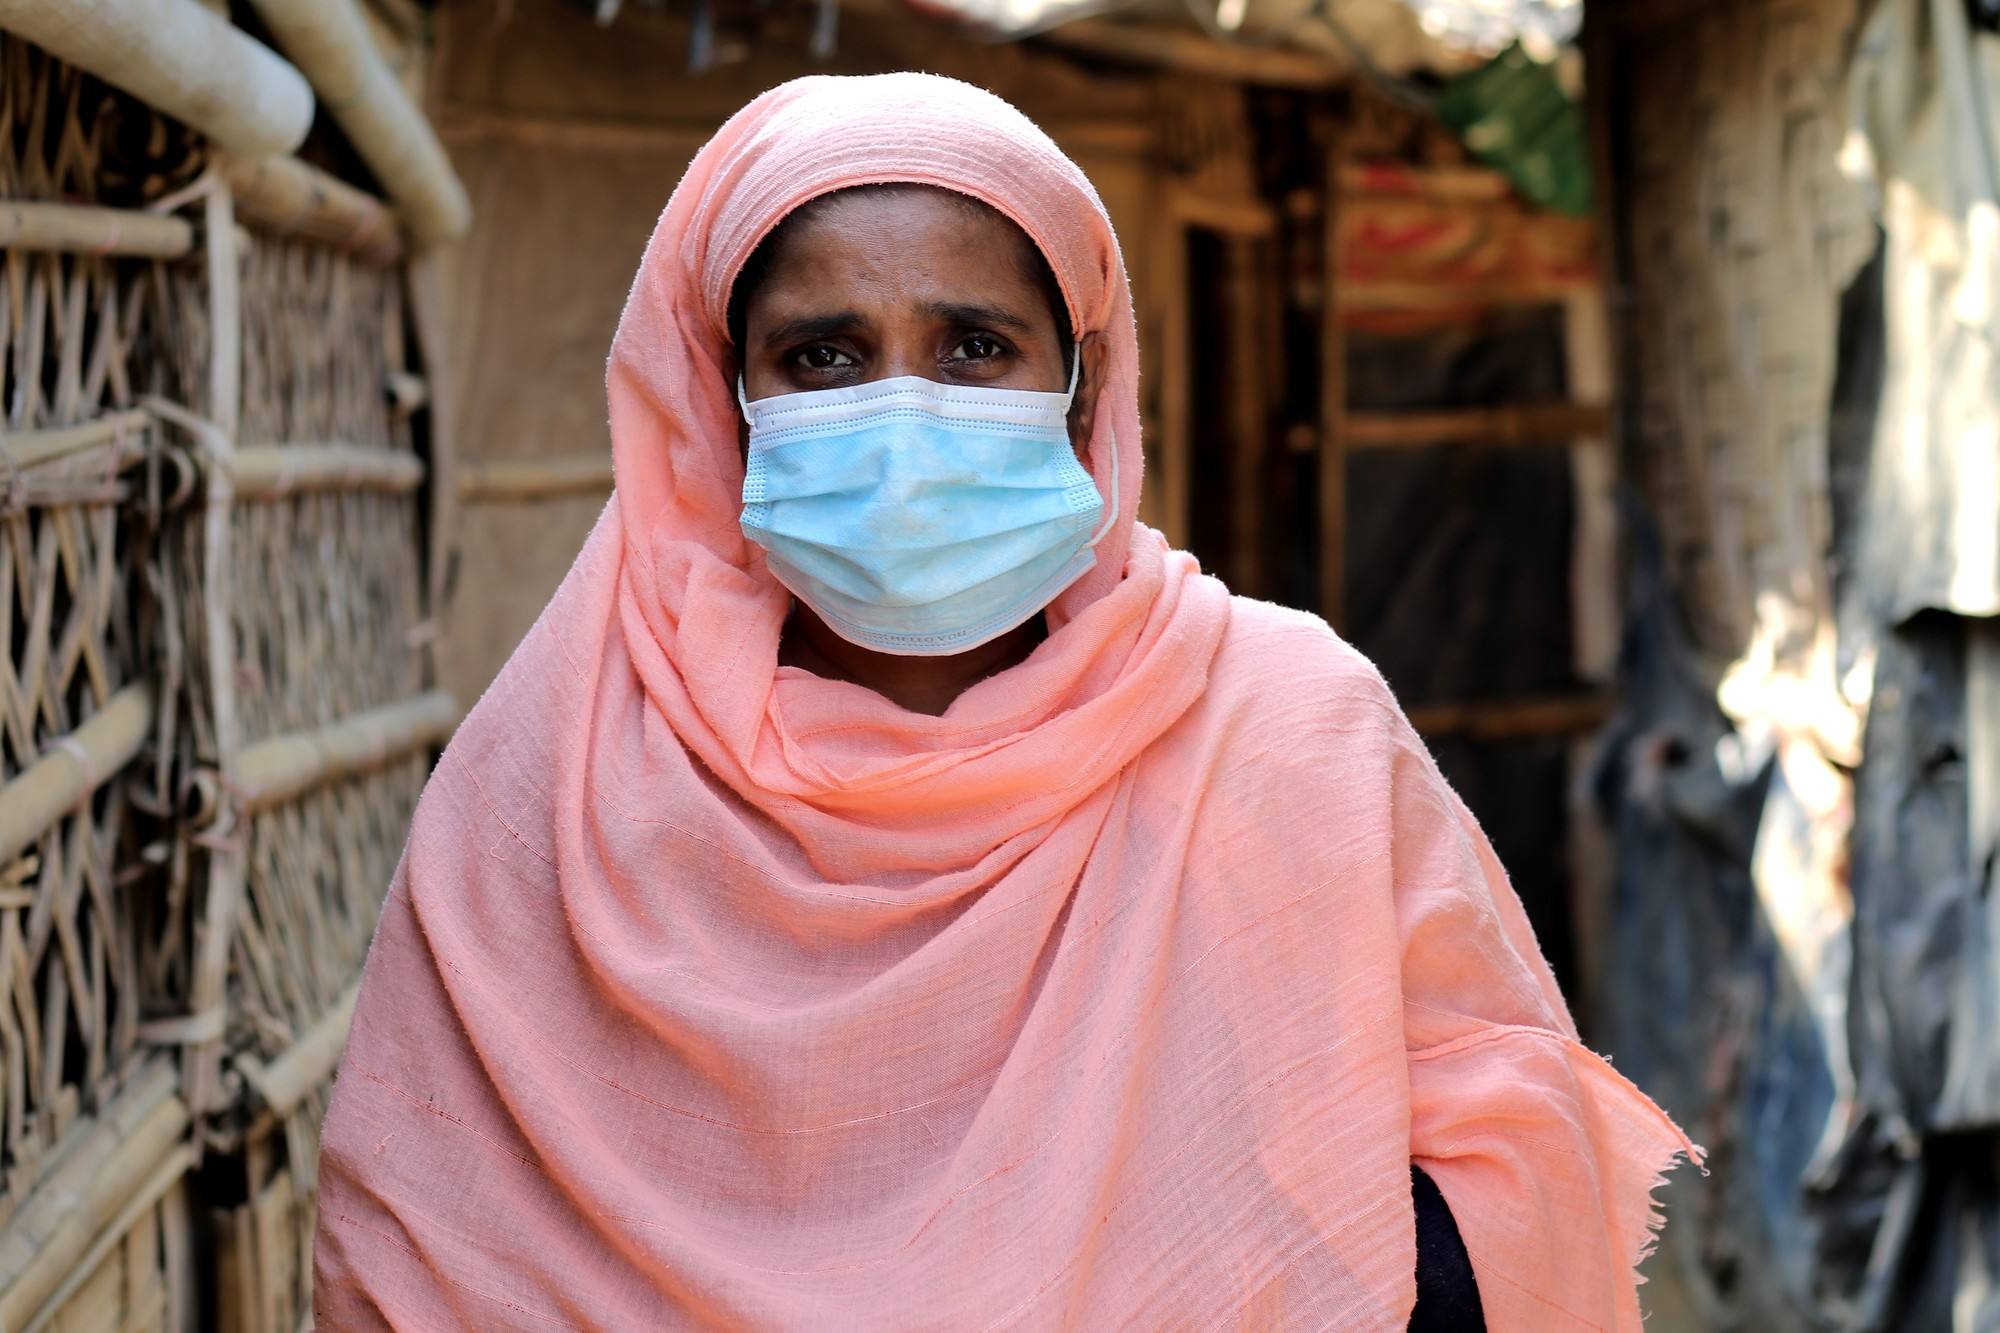 A woman wears a surgical mask.